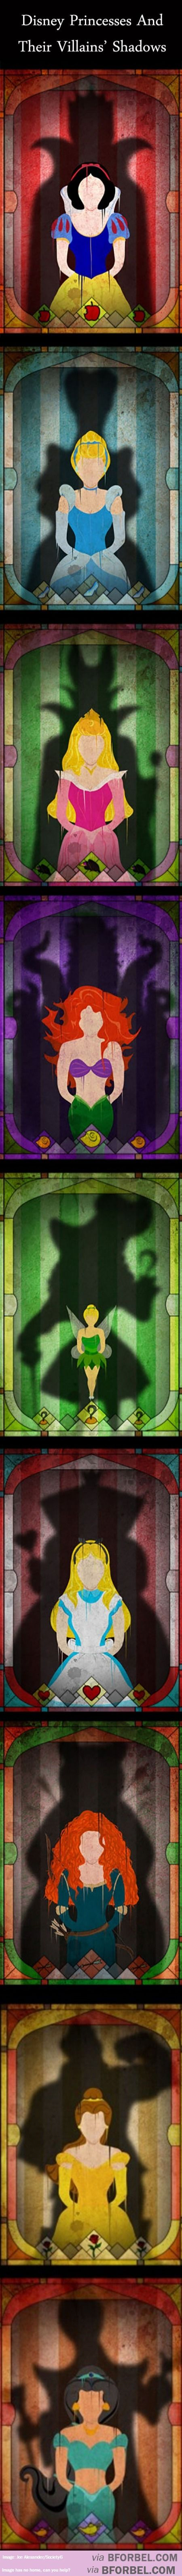 9 Disney Princesses Haunted By The Shadows Of Their Villains… | B for Bel